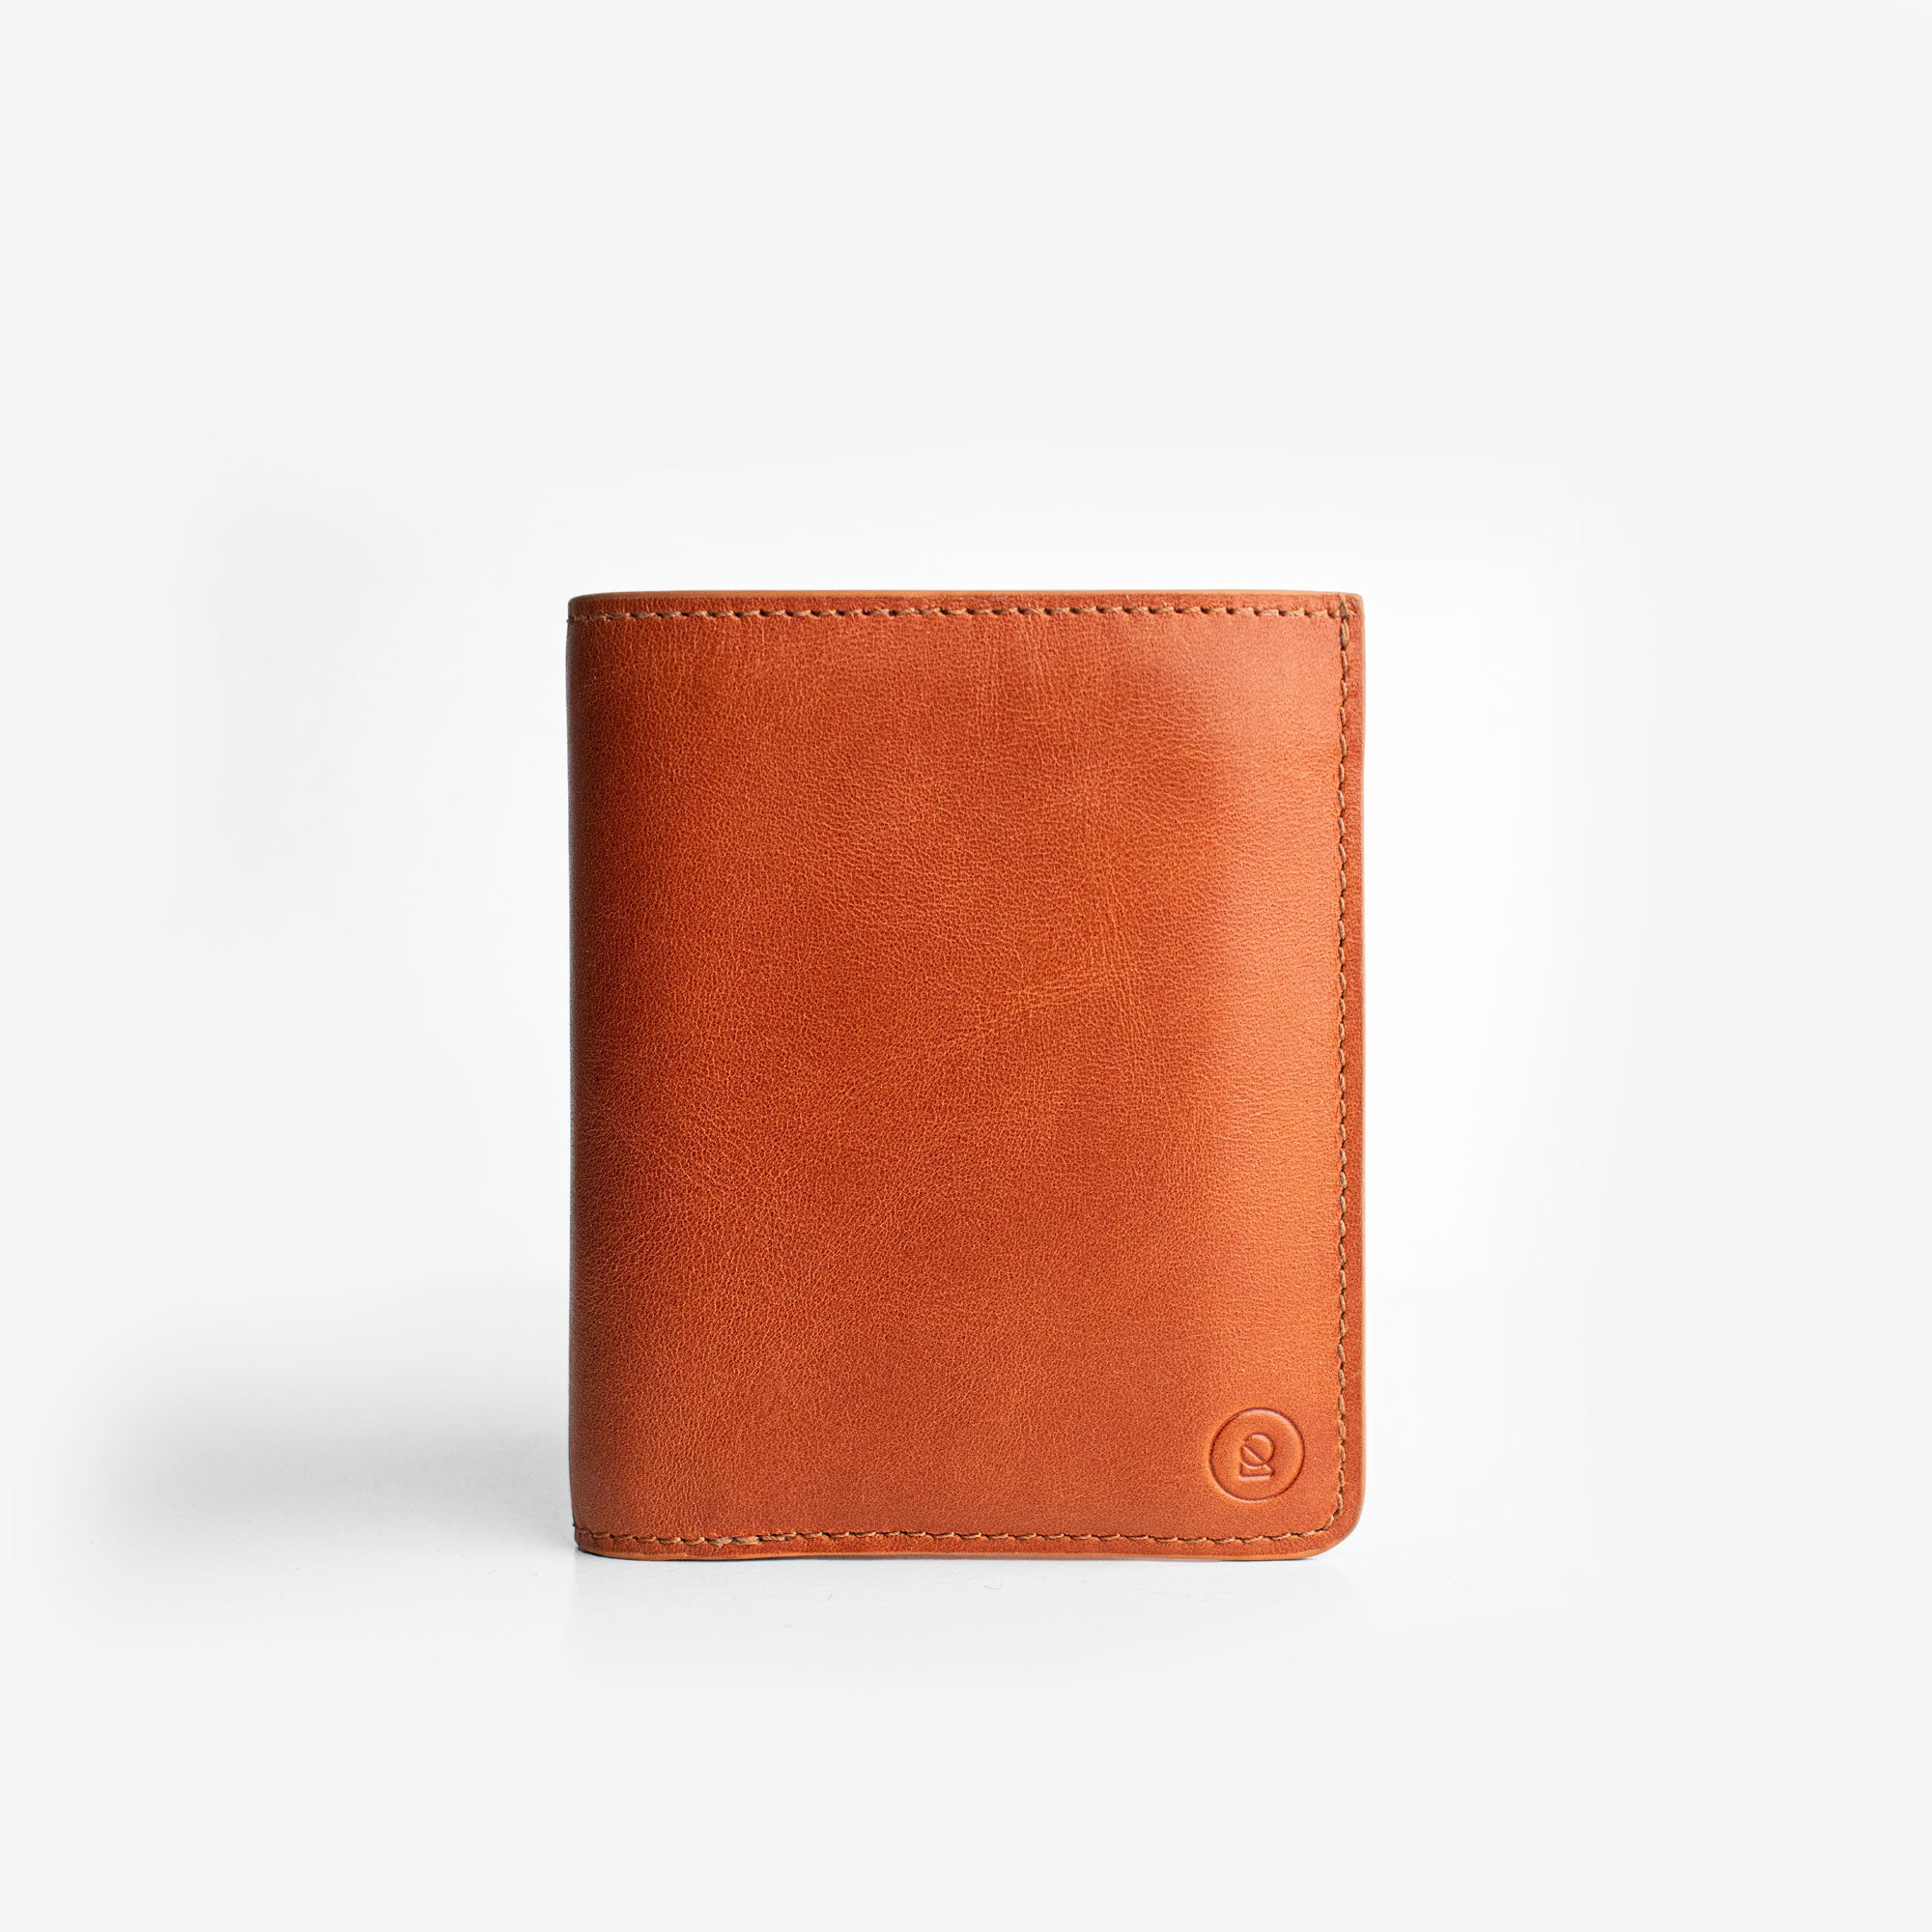 Super Slim Bi-Fold Wallet - Saddle Brown - RYAN London